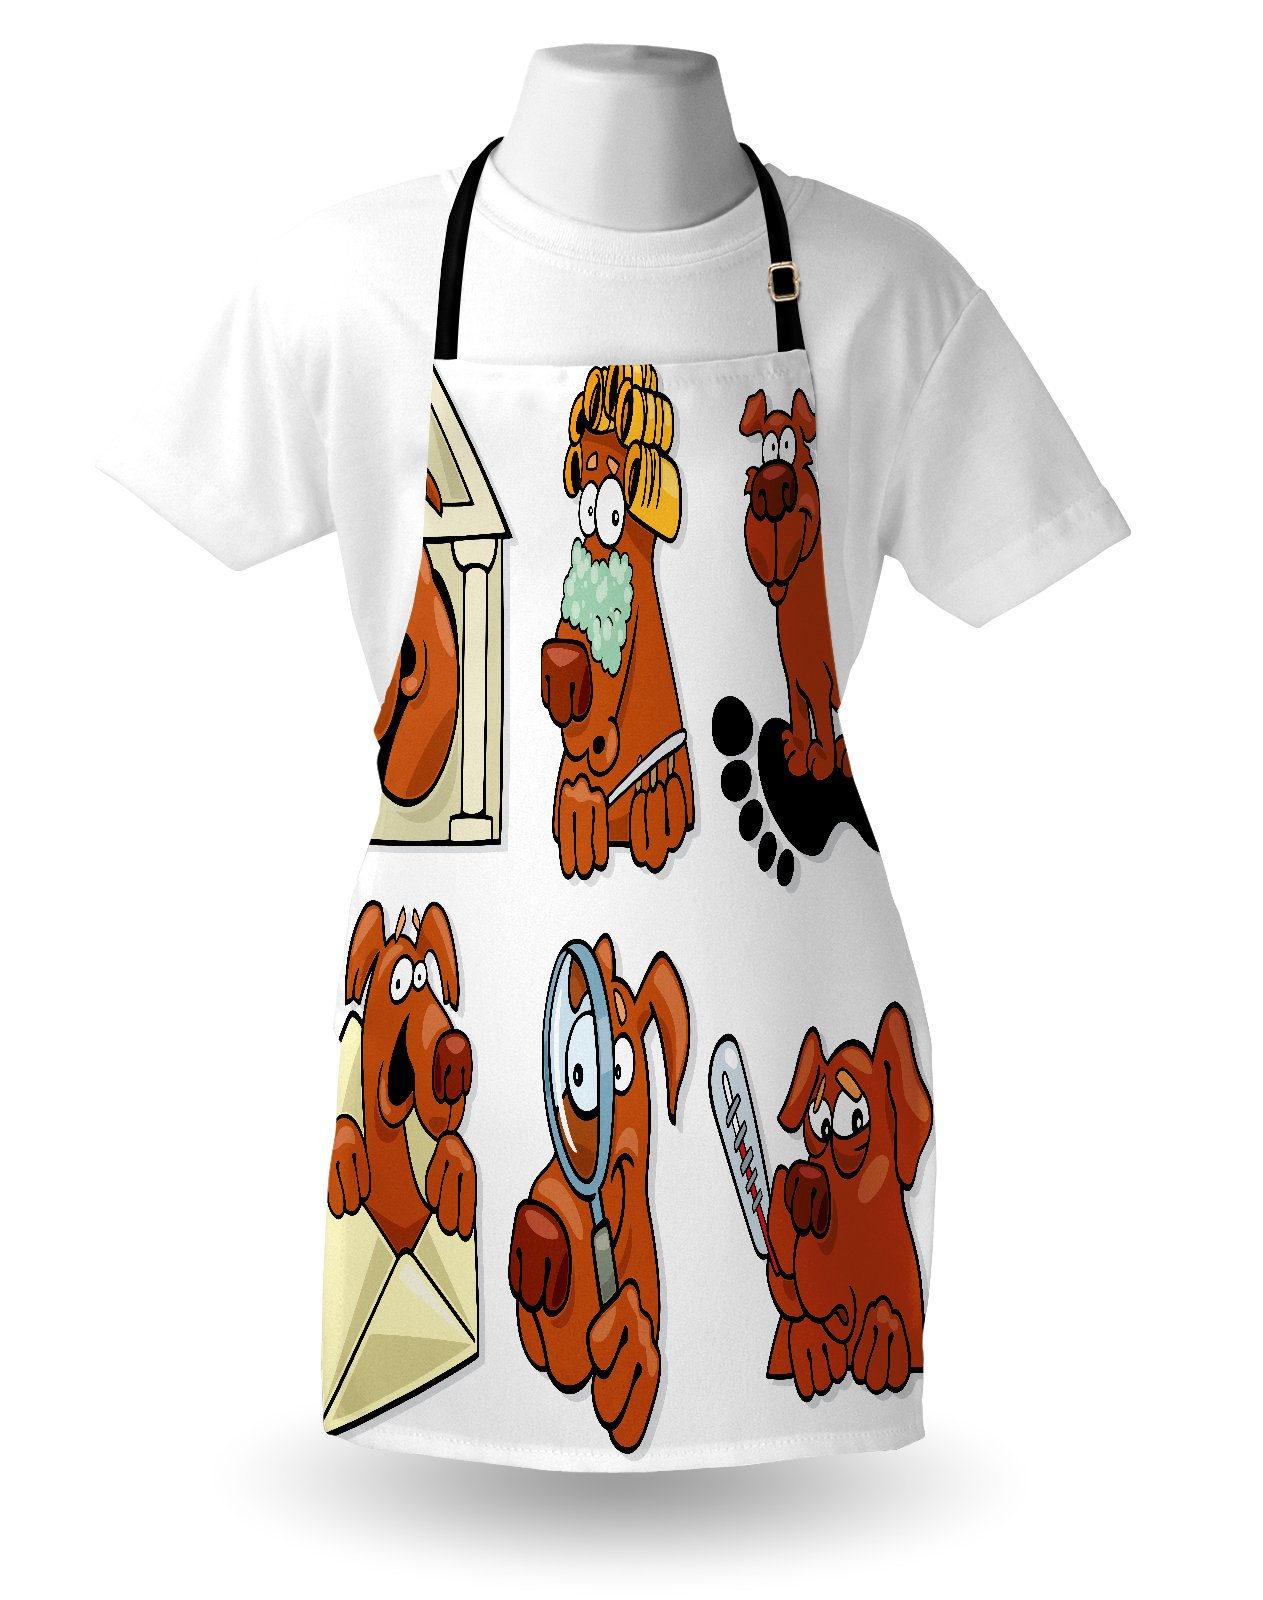 Lunarable Dog Lover Apron, Dog Beauty Spa Toothy Smiling Sick Cheerful Looking Magnifying Action, Unisex Kitchen Bib Apron with Adjustable Neck for Cooking Baking Gardening, Cinnamon Coconut White by Lunarable (Image #3)